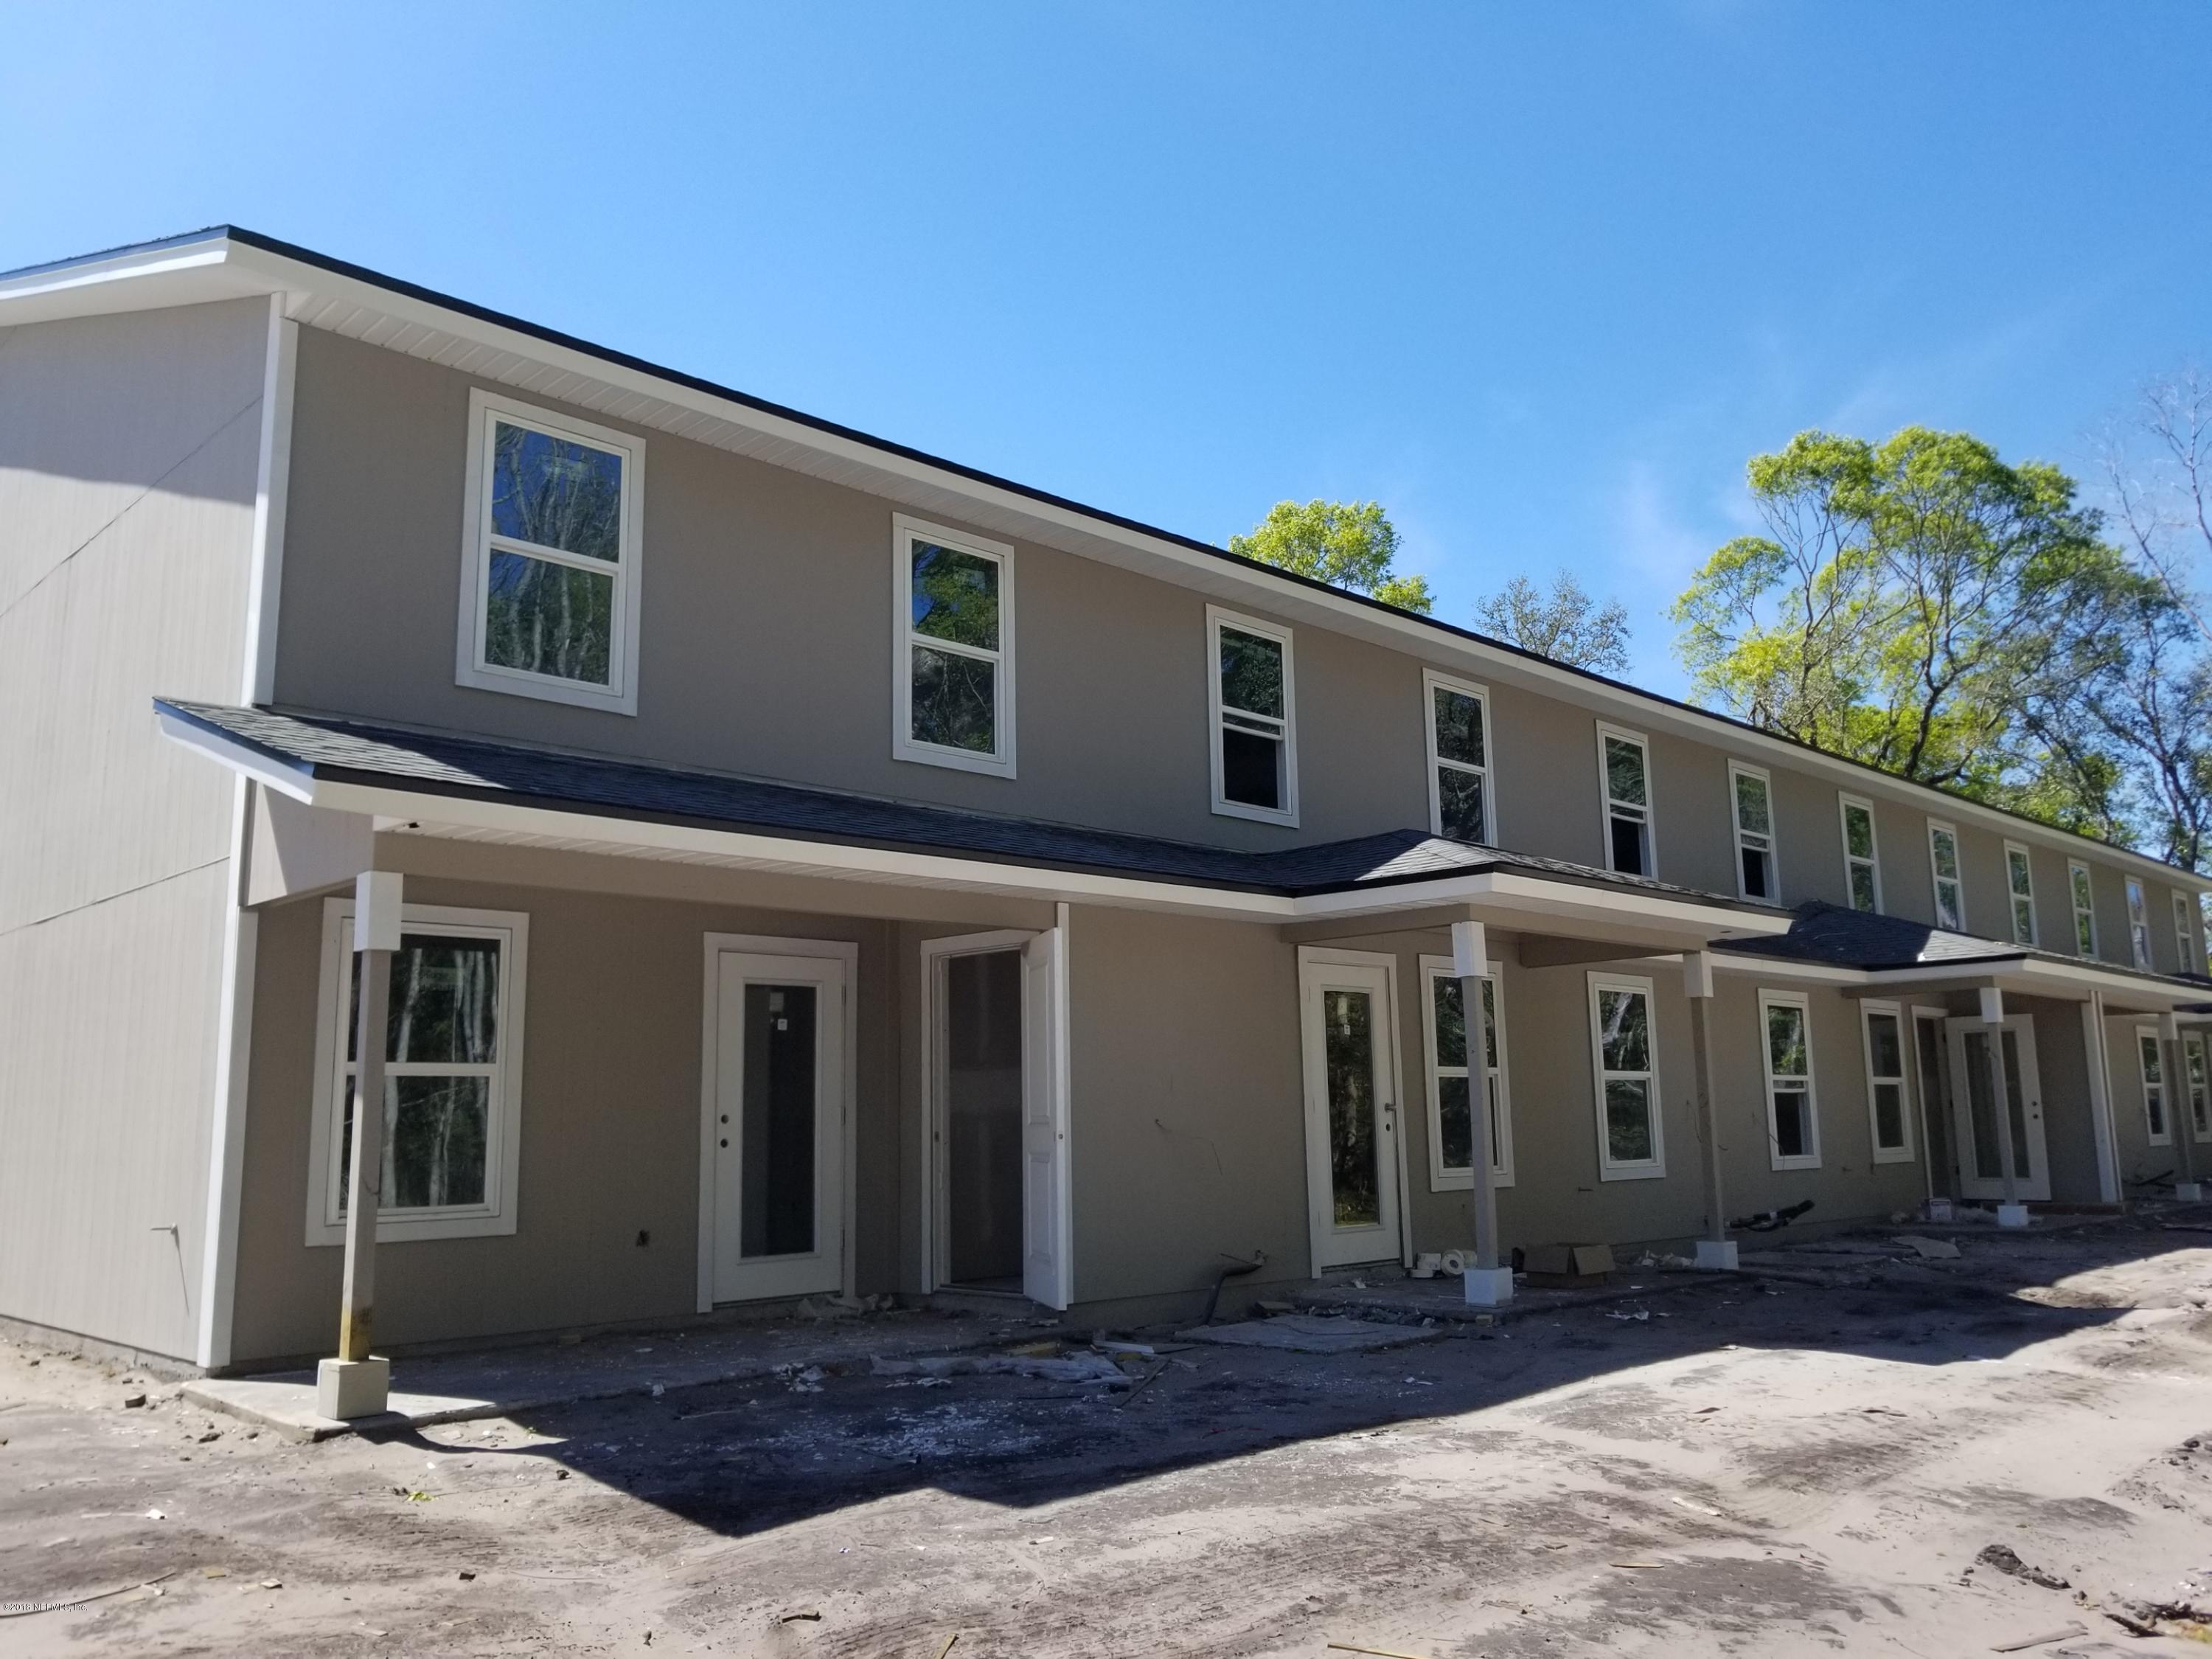 386 OLD JENNINGS, ORANGE PARK, FLORIDA 32065, 3 Bedrooms Bedrooms, ,2 BathroomsBathrooms,Residential - townhome,For sale,OLD JENNINGS,902798